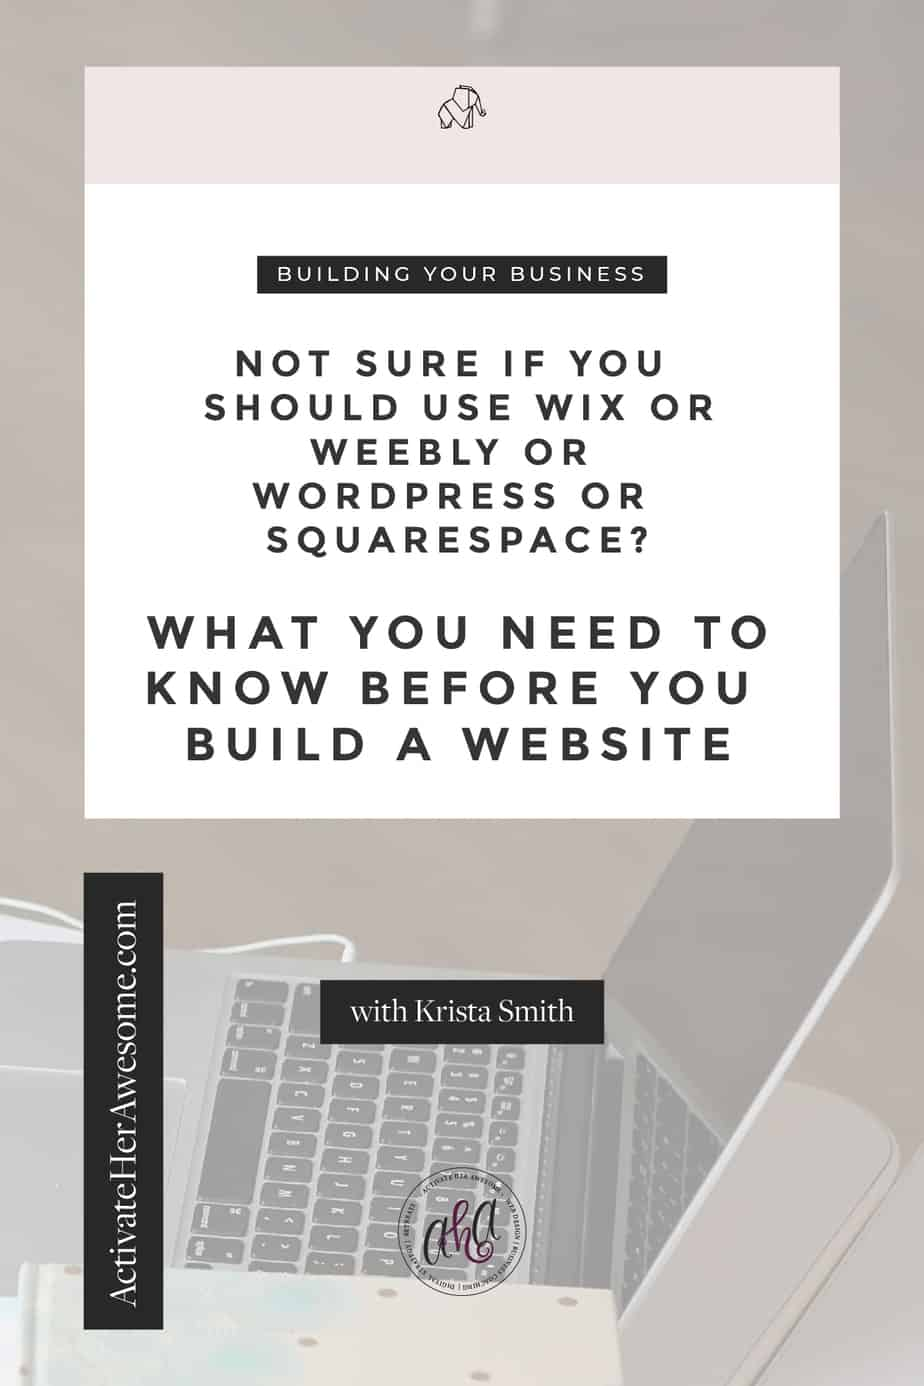 Not Sure if You Should Use WordPress or Wix or Weebly or Squarespace via Krista Smith at ActivateHerAwesome.com